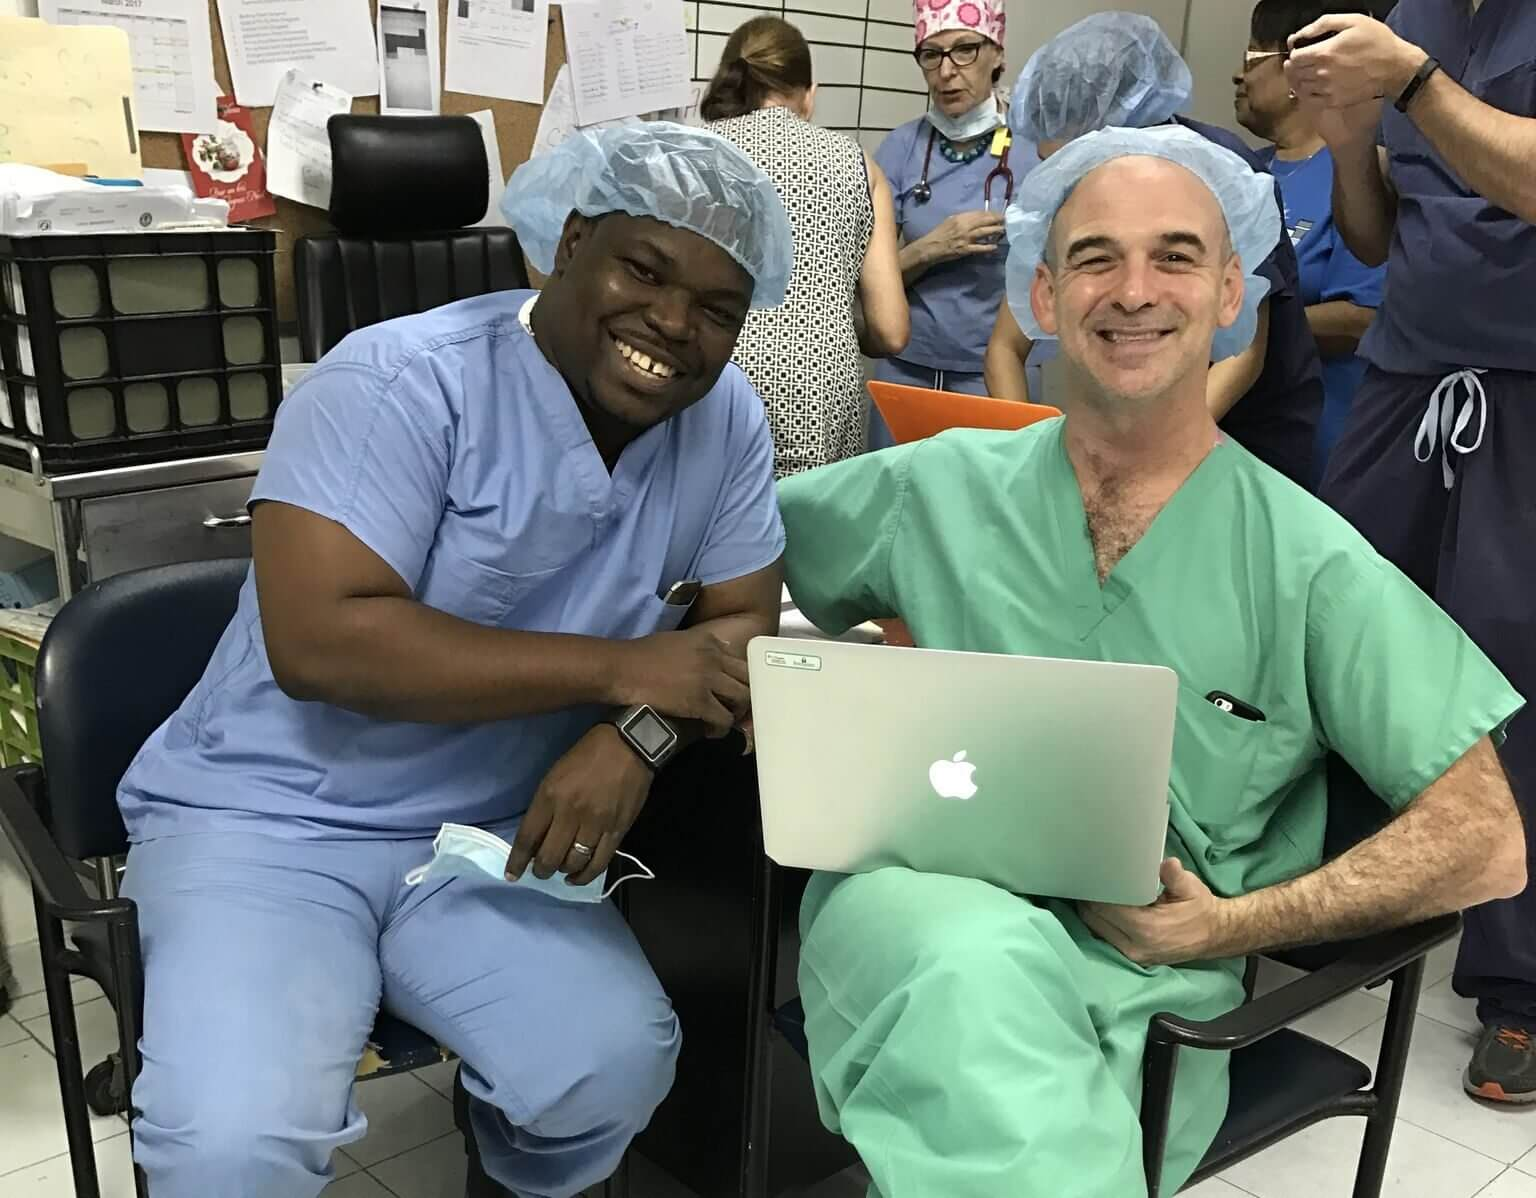 Yudy Lafortune, Dr. Sandberg's protege in Haiti, pictured with Dr. Sandberg at the Bernard Mevs Hospital.